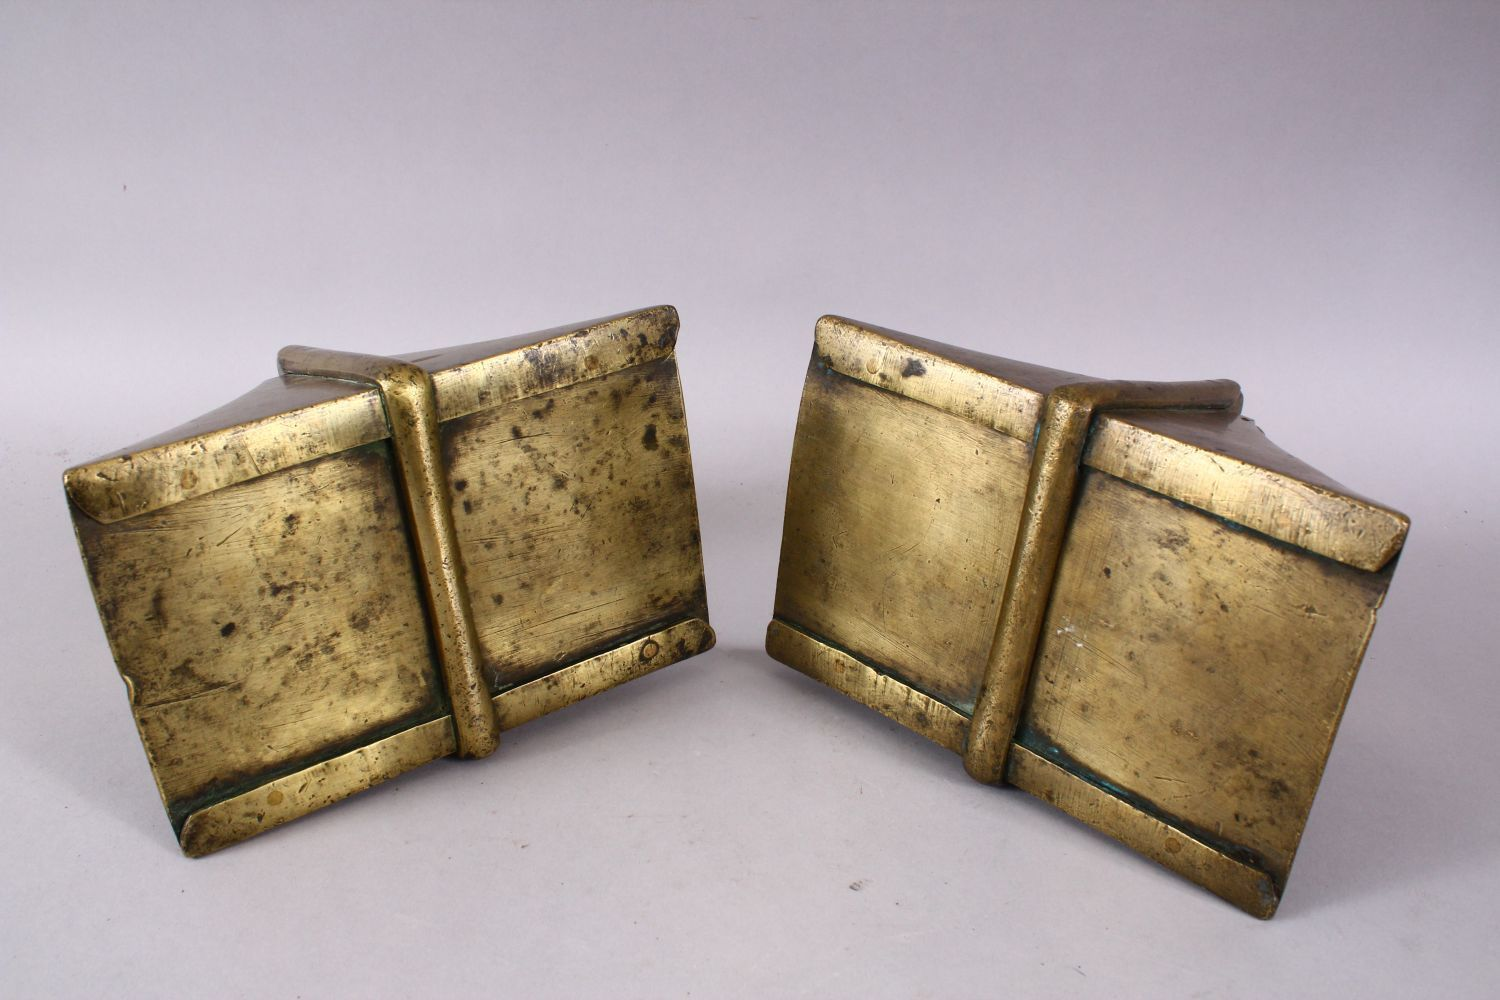 A GOOD PAIR OF 19TH CENTURY BRASS / BRONZE HORSE STIRRUP'S, 17cm high x 12cm wide. - Image 2 of 3